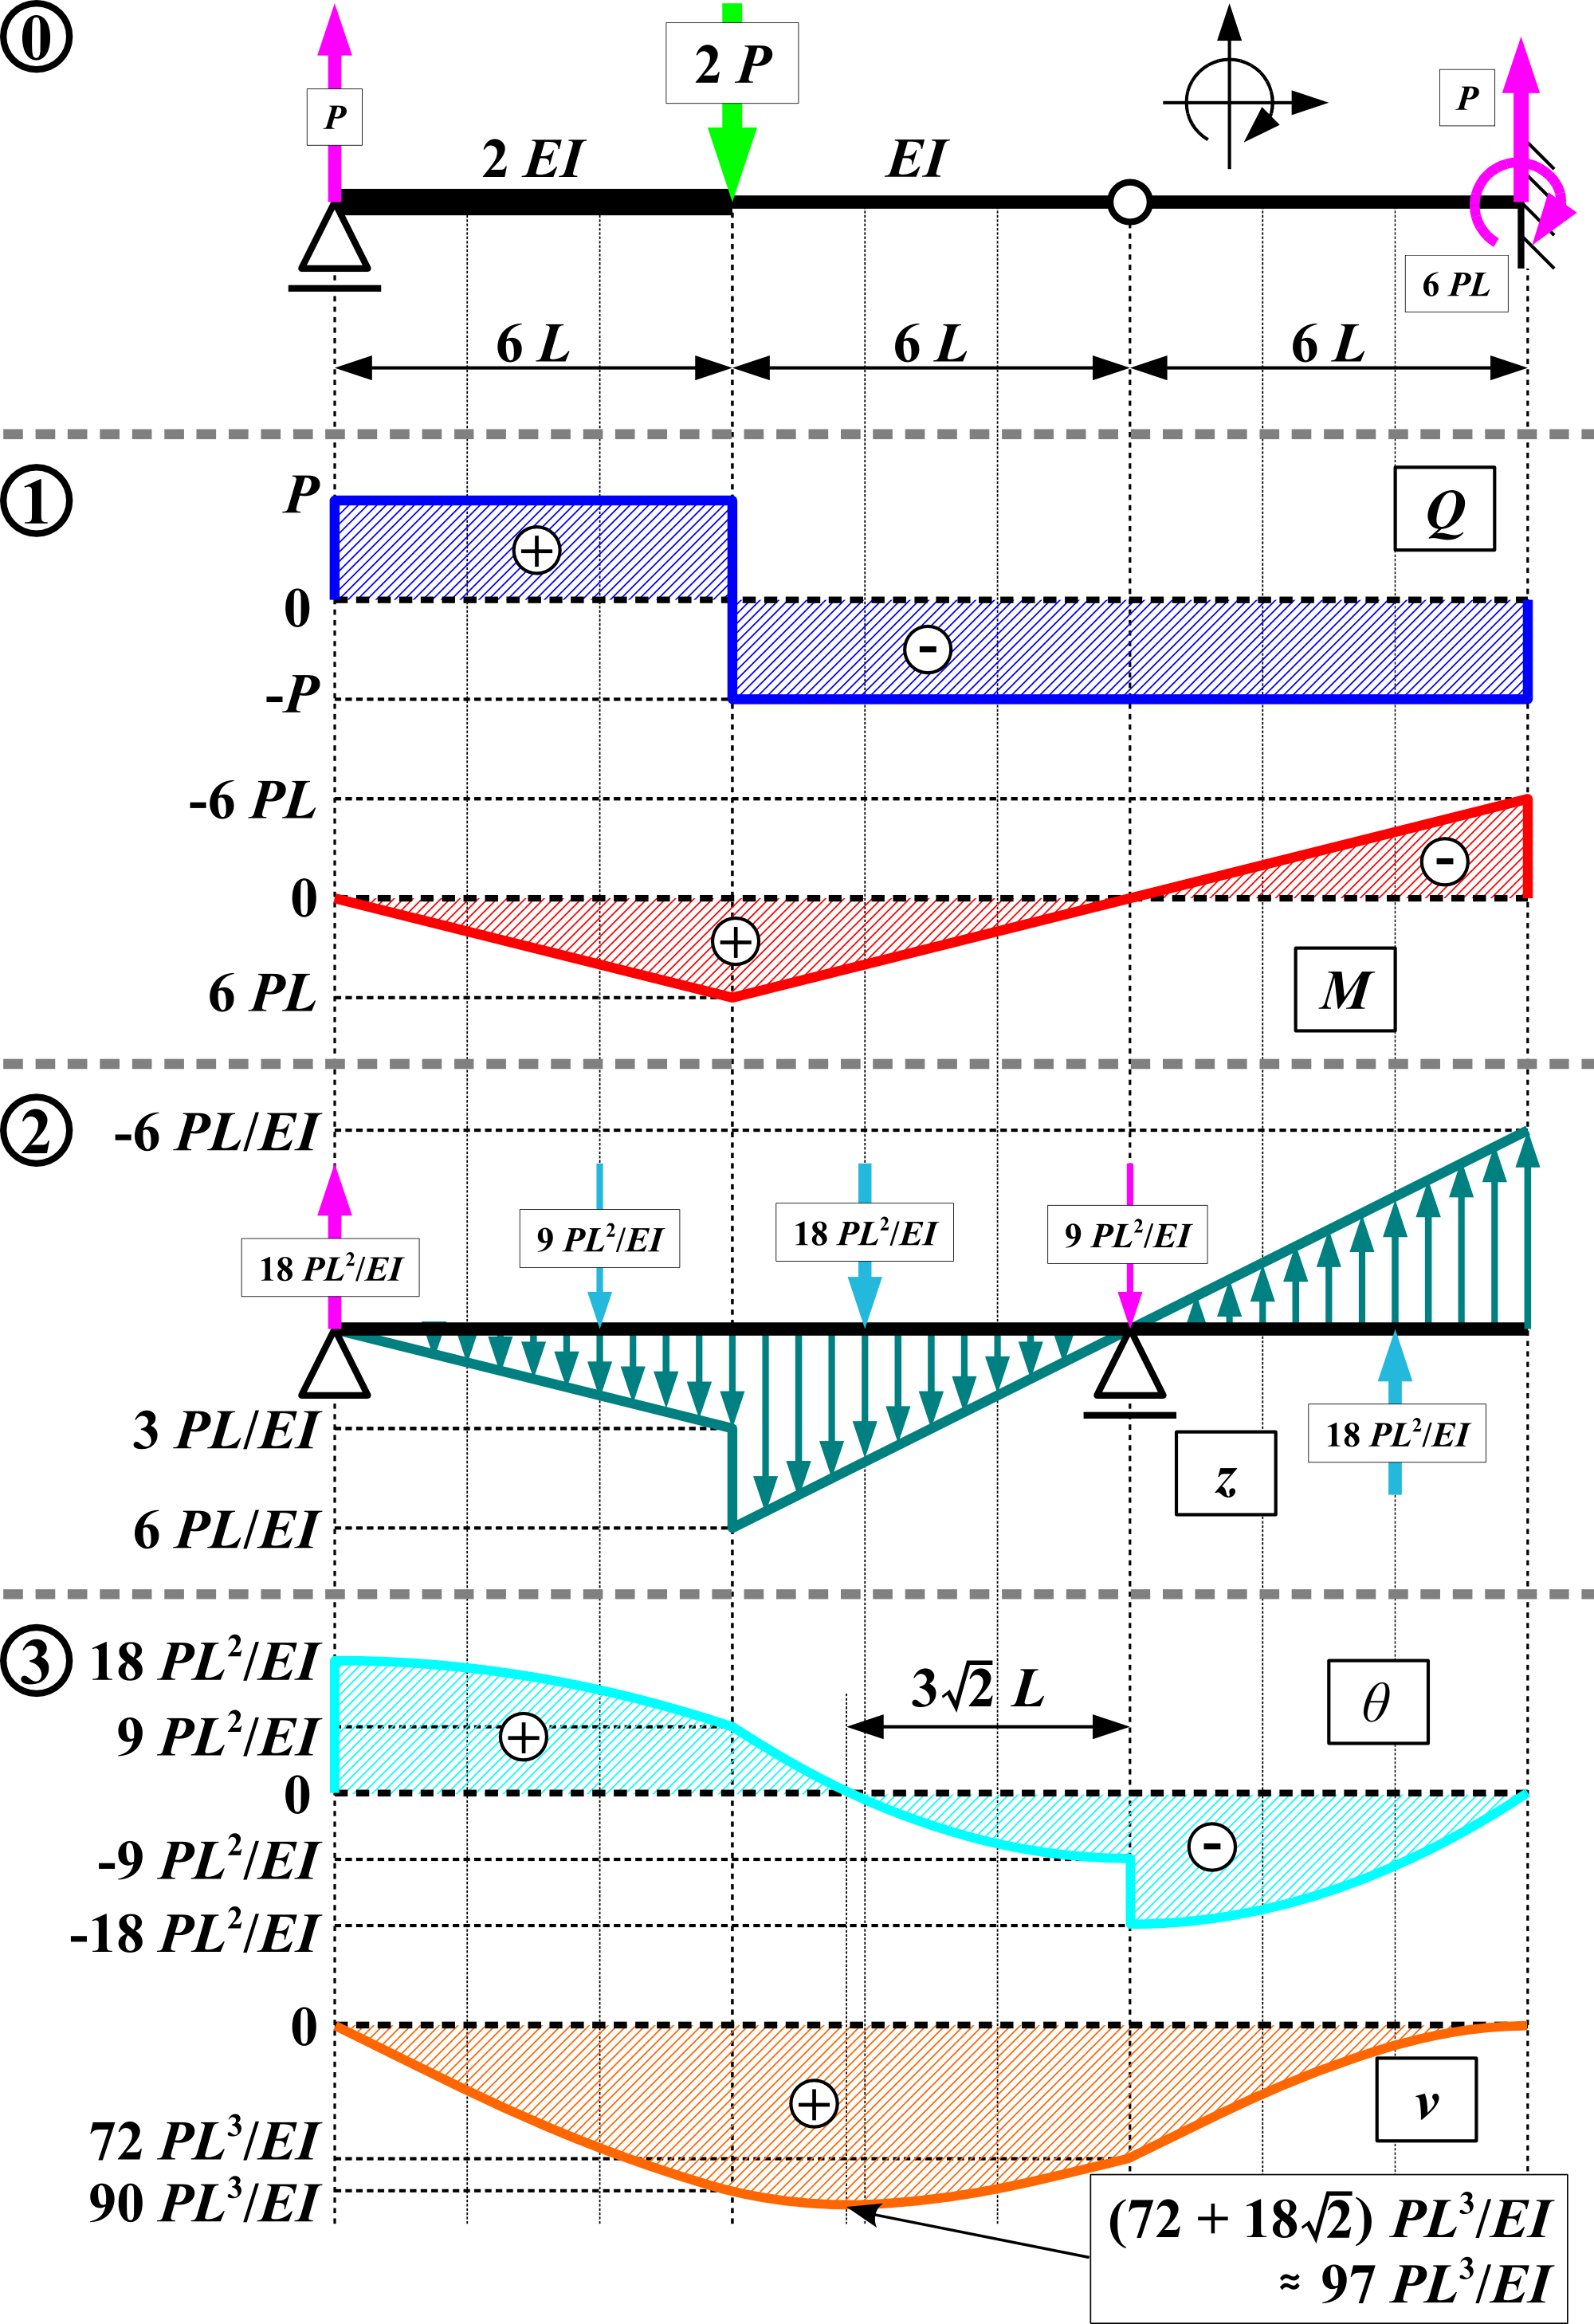 Swell Conjugate Beam Method Wikipedia Wiring Digital Resources Spoatbouhousnl